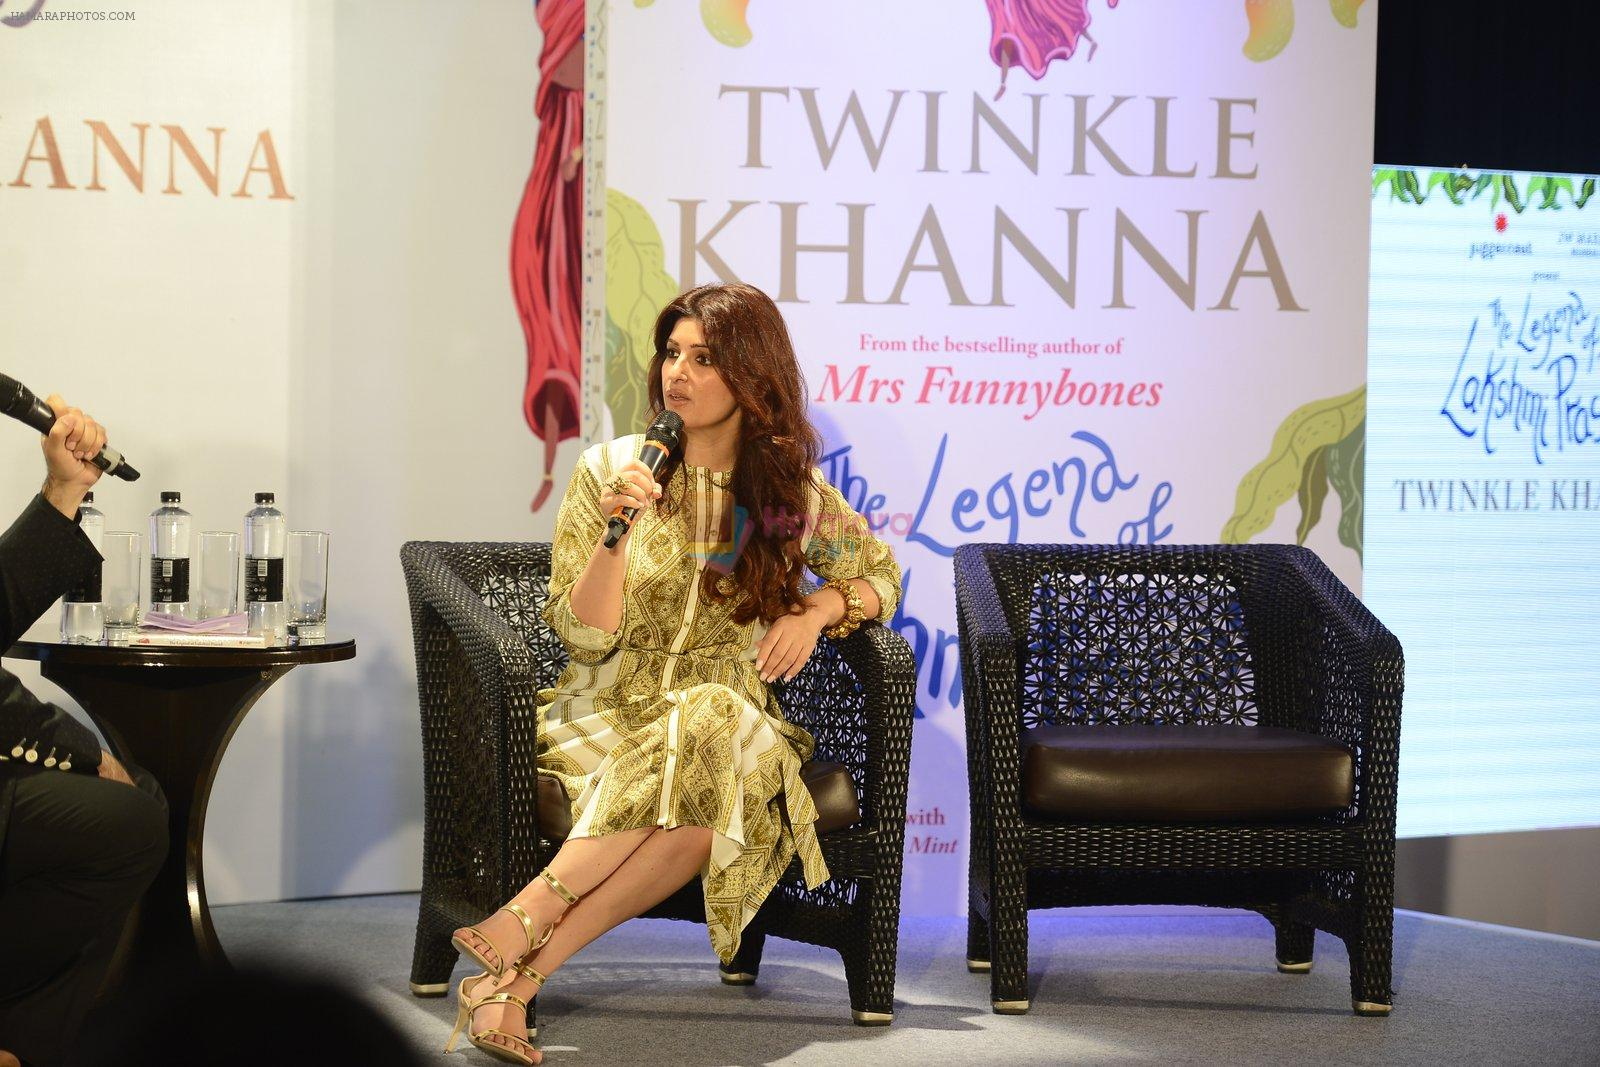 Twinkle Khanna's book launch in J W Marriott, Mumbai on 15th Nov 2016